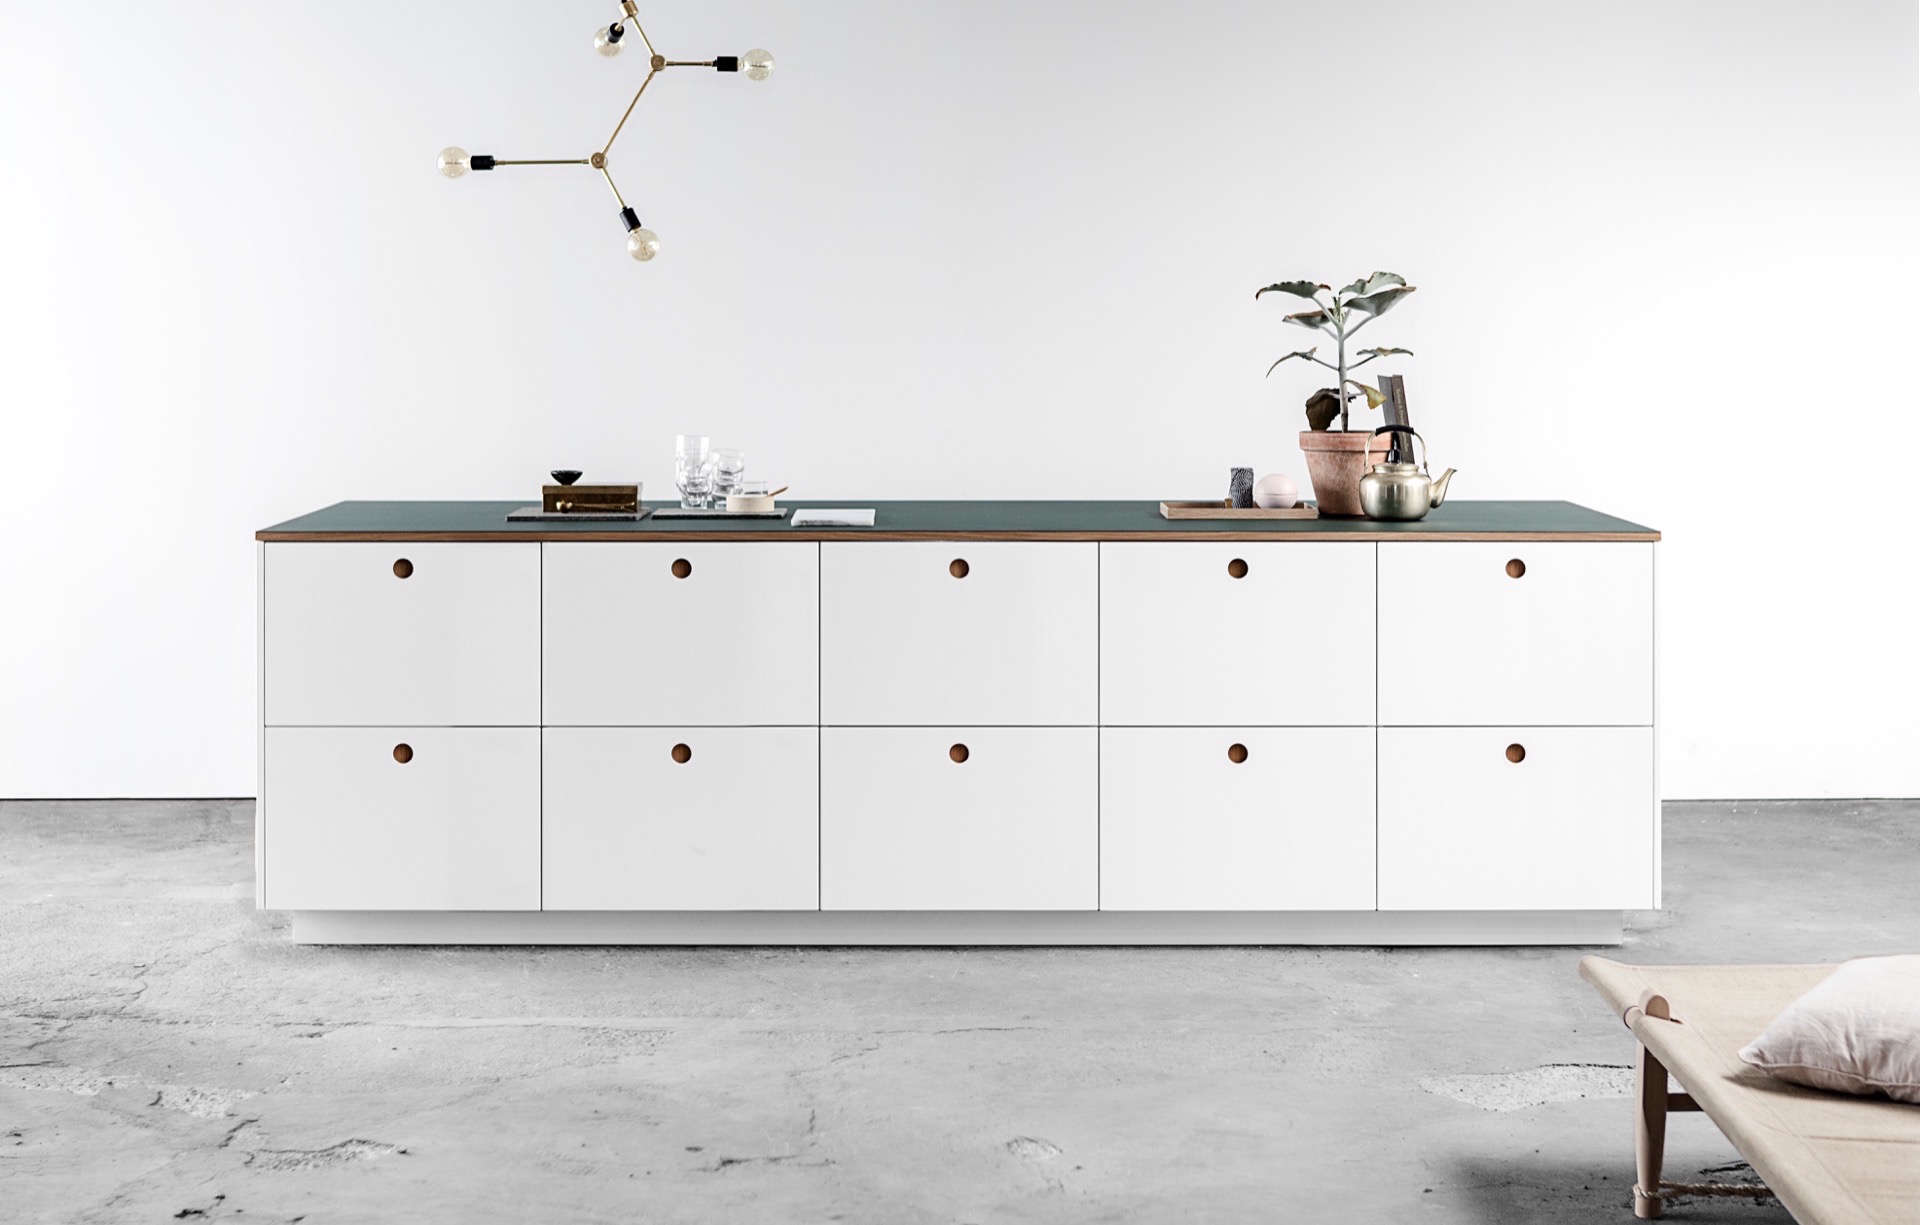 ikea hack: the basis kitchen from reform made with ikea cabinets and reform's f 9